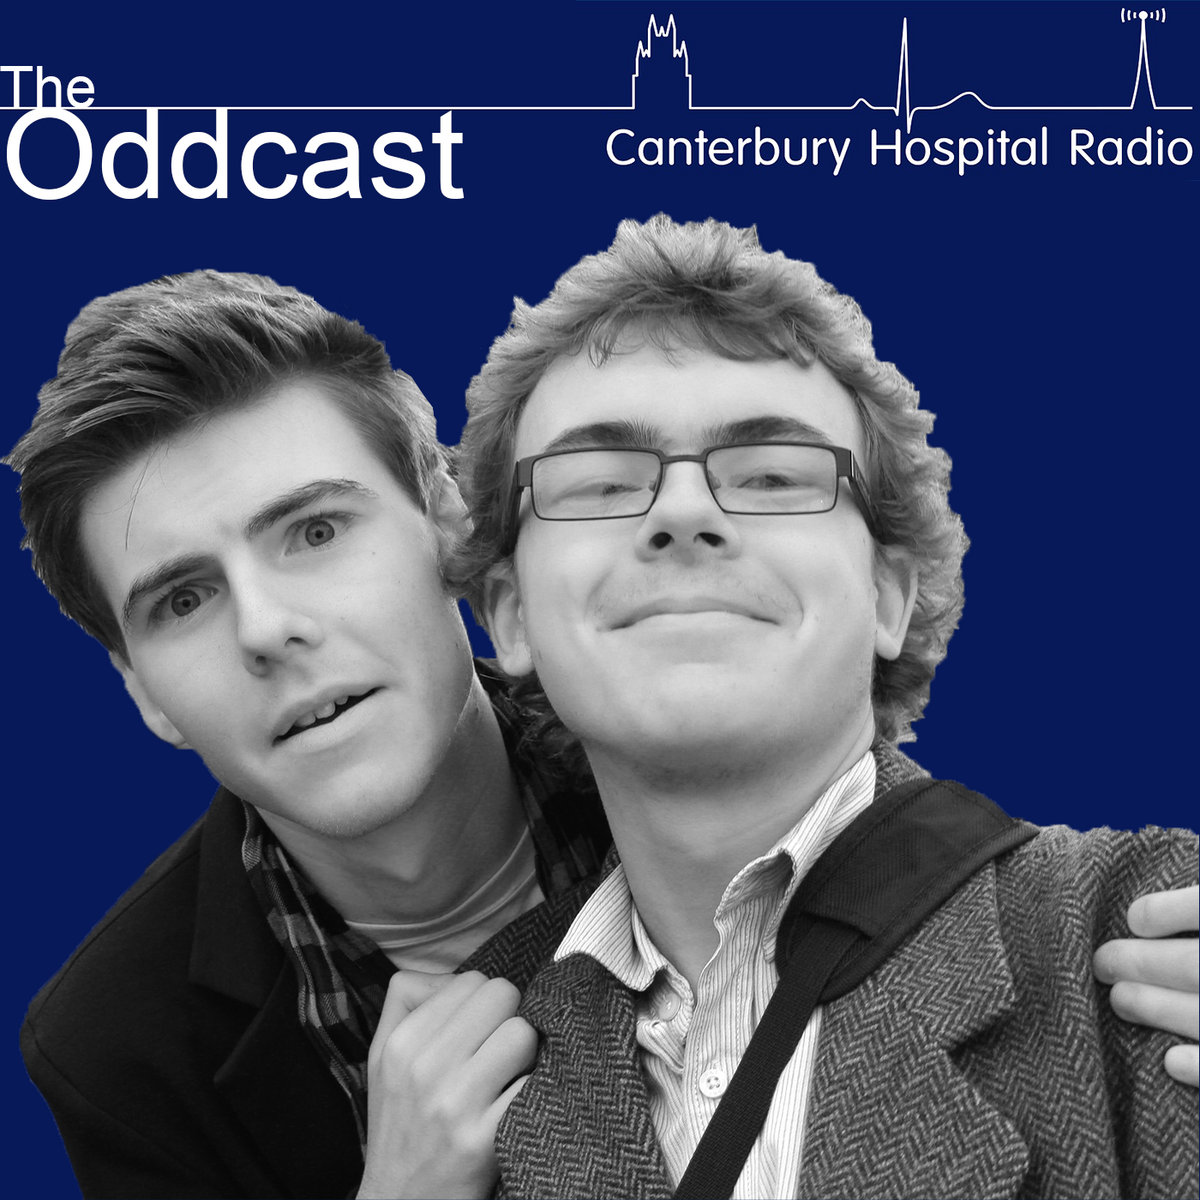 The Oddcast - Series 1 | The Oddcast